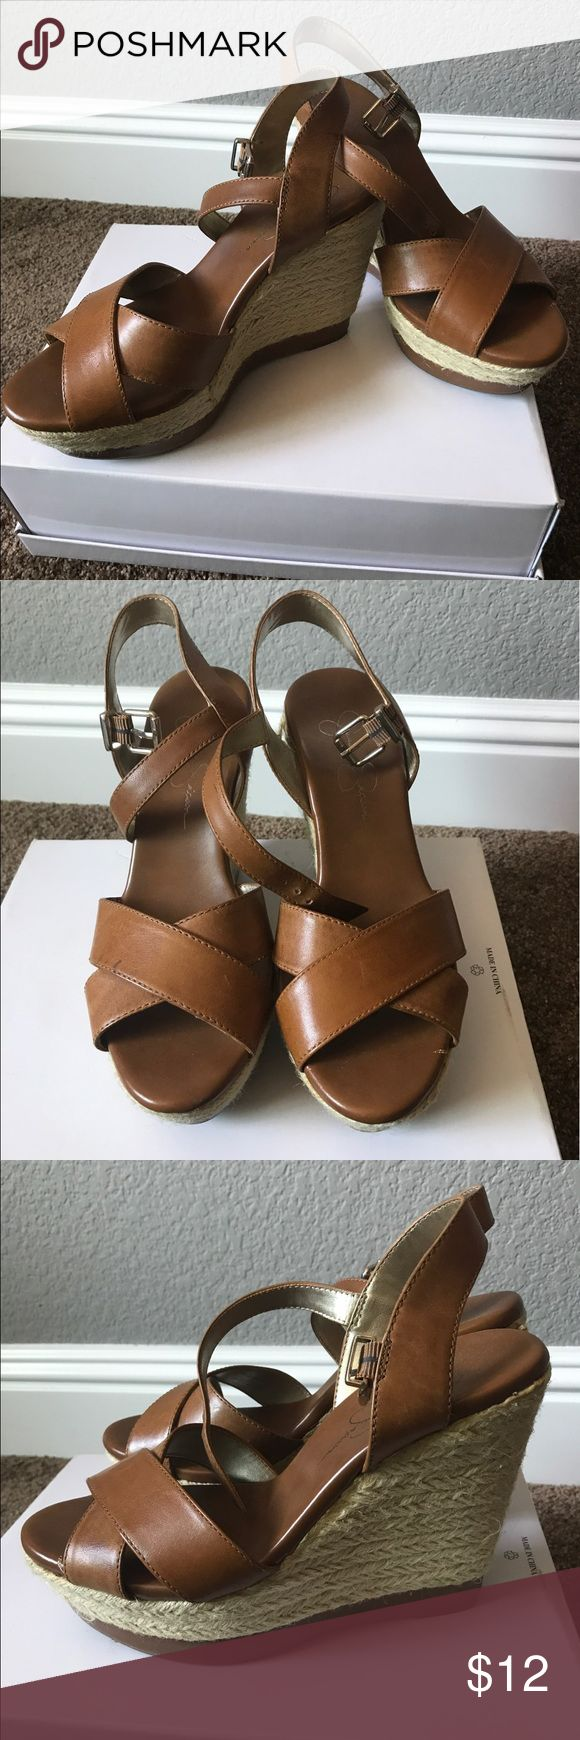 Jessica Simpson wedges Sz. 7 Jessica Simpson cognac wedges Sz. 7. Used and in good condition, too tall for me! Jessica Simpson Shoes Wedges